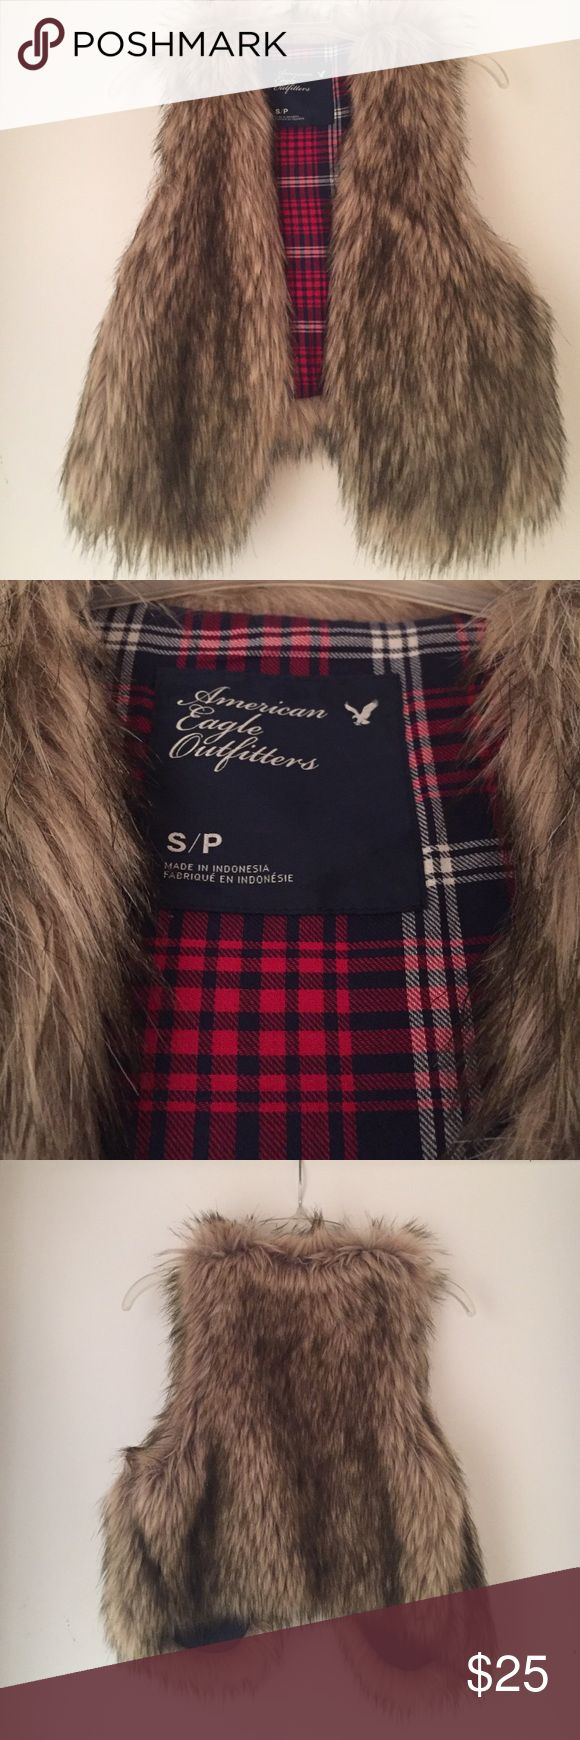 American eagle outfitters women's fur vest size S Women's size small fur vest from American eagle outfitters - brown fur and plaid inside American Eagle Outfitters Jackets & Coats Vests